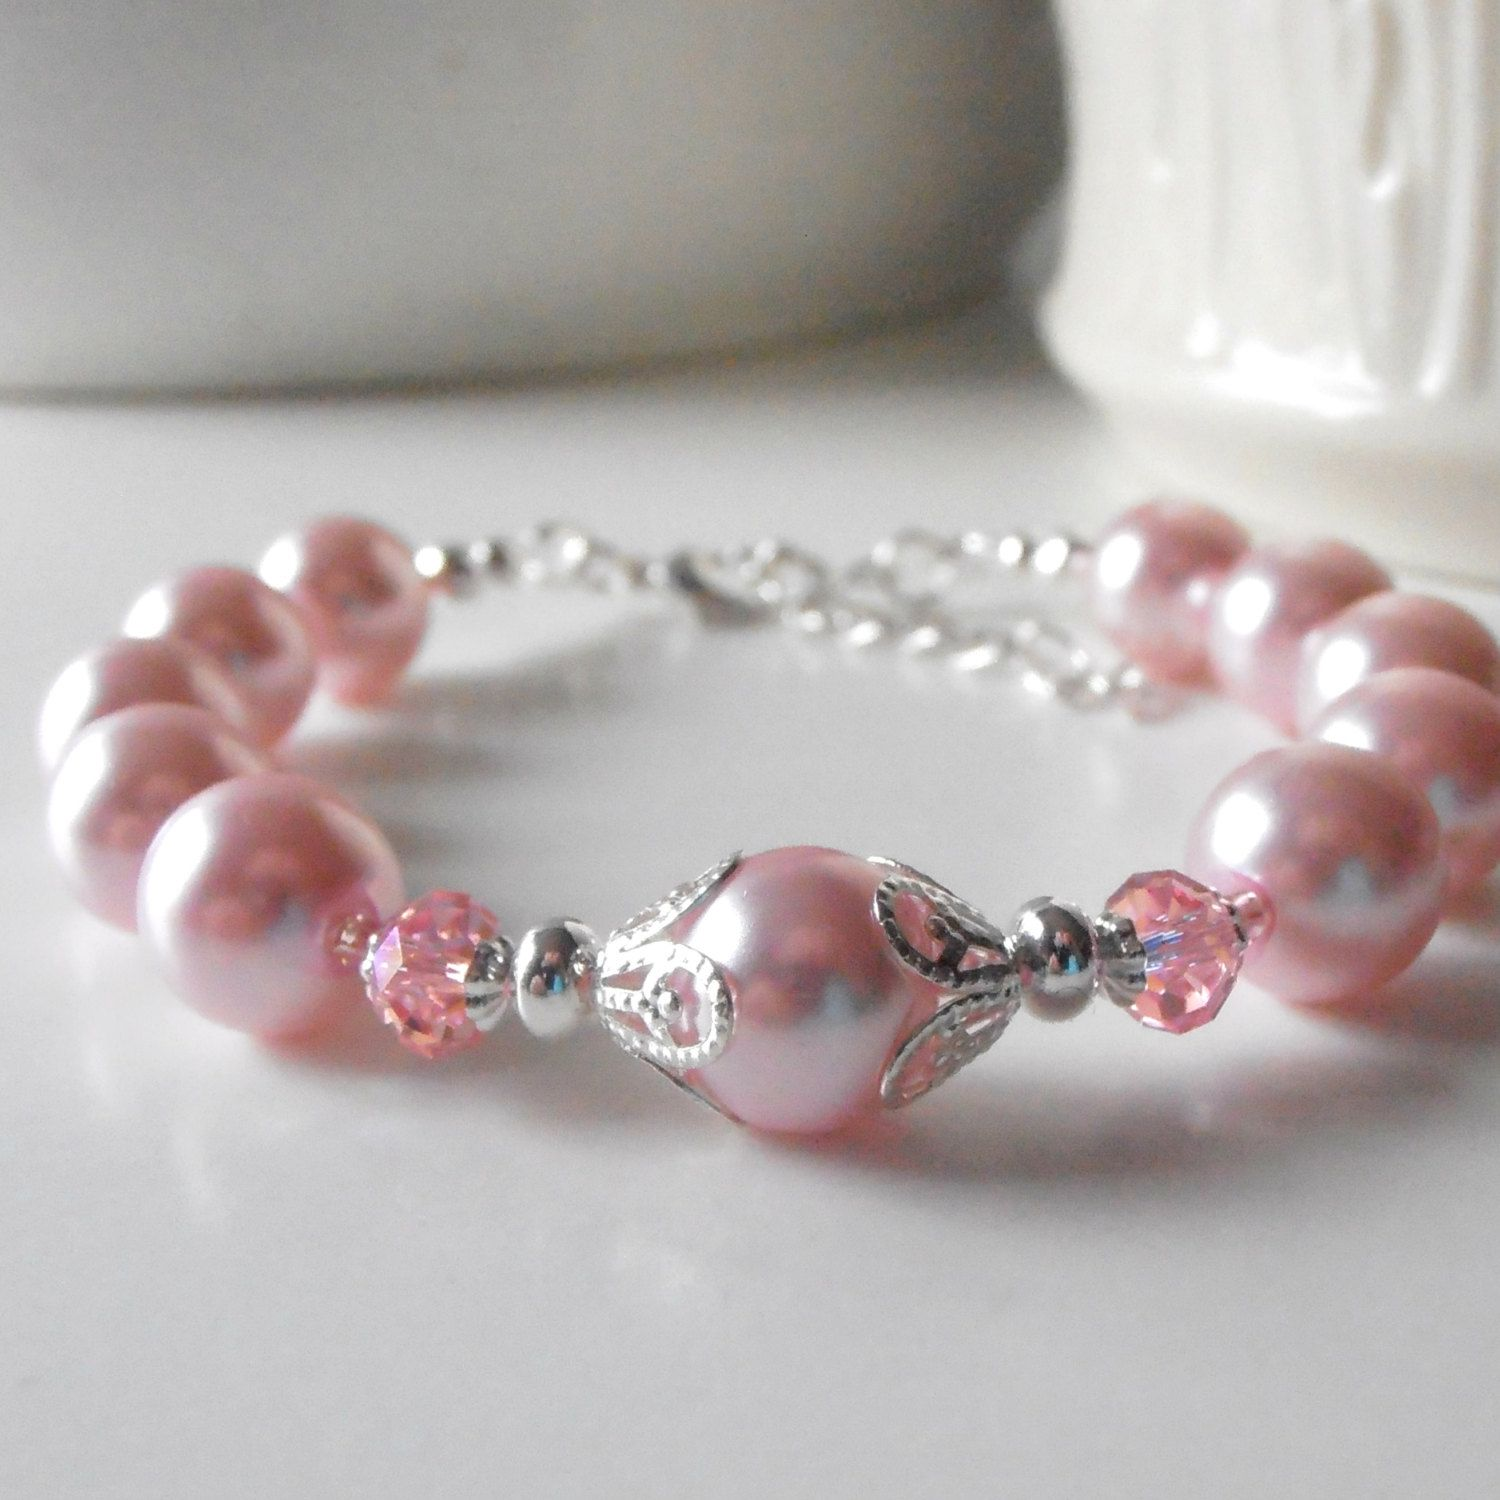 Bridesmaid Jewelry Sets Pink Pearl Beaded Bracelets For Bridal Party Handmade Wedding Jewellery Bridesmaids